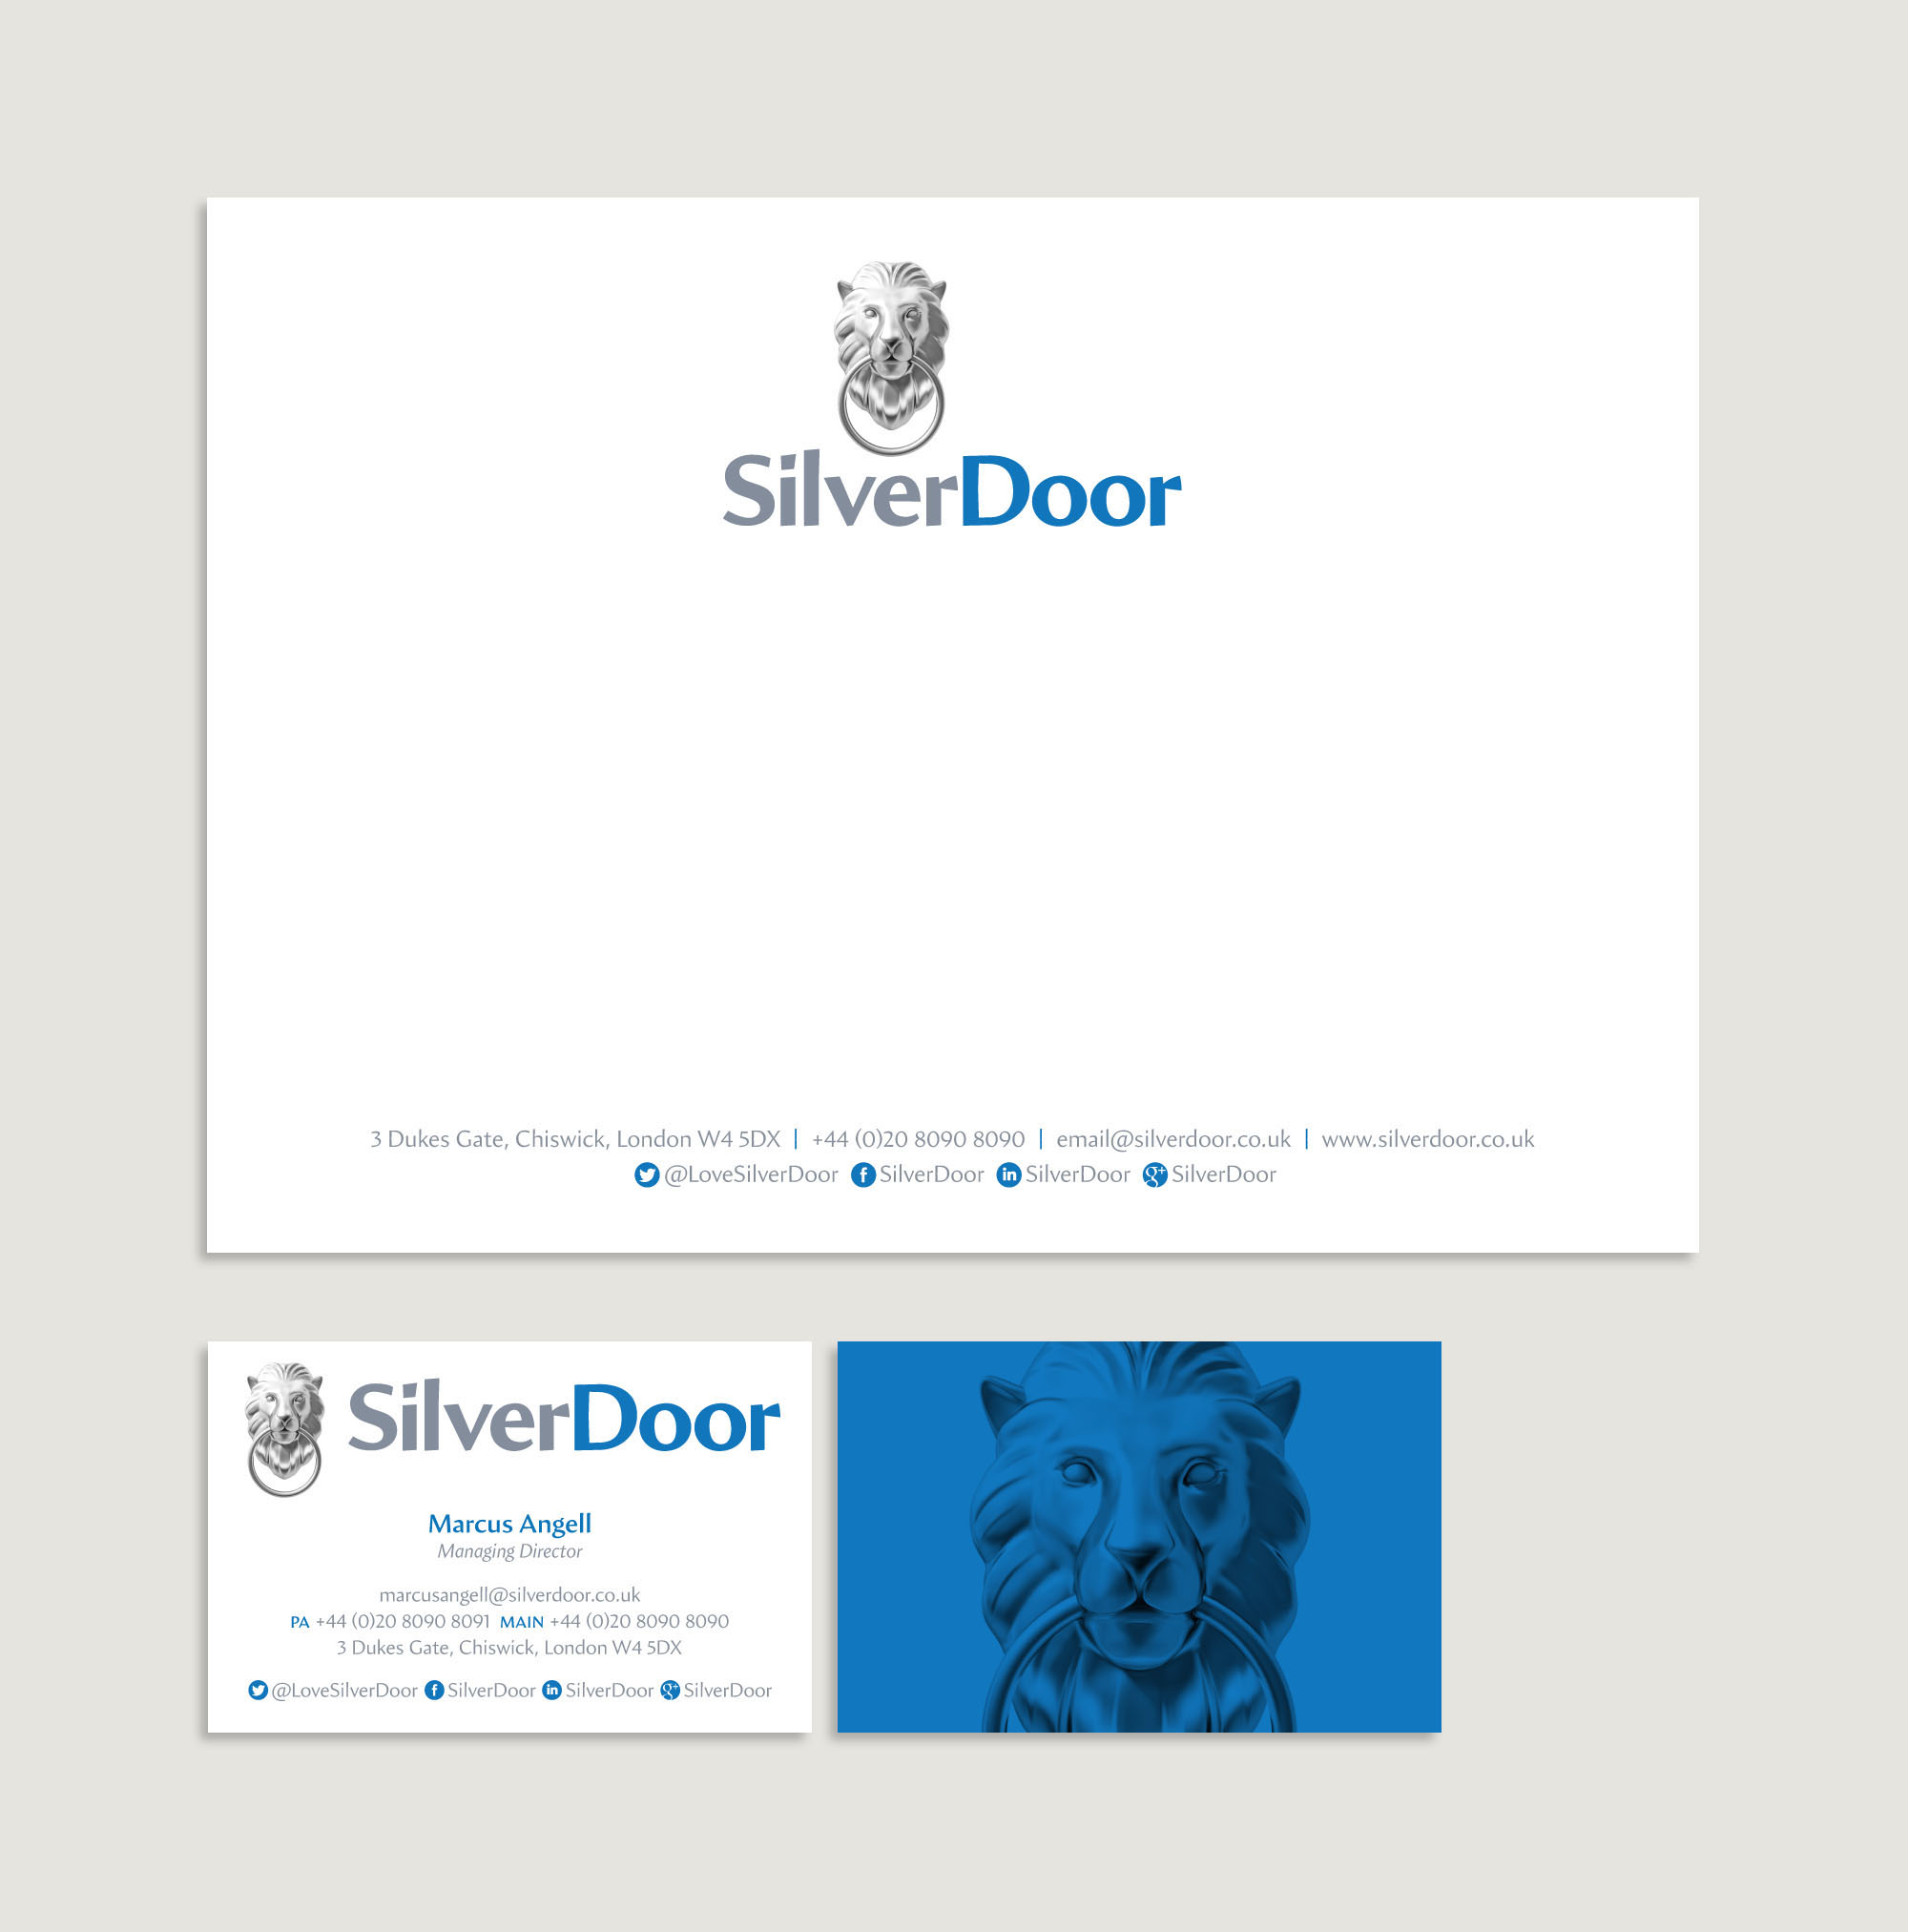 SilverDoor stationery design